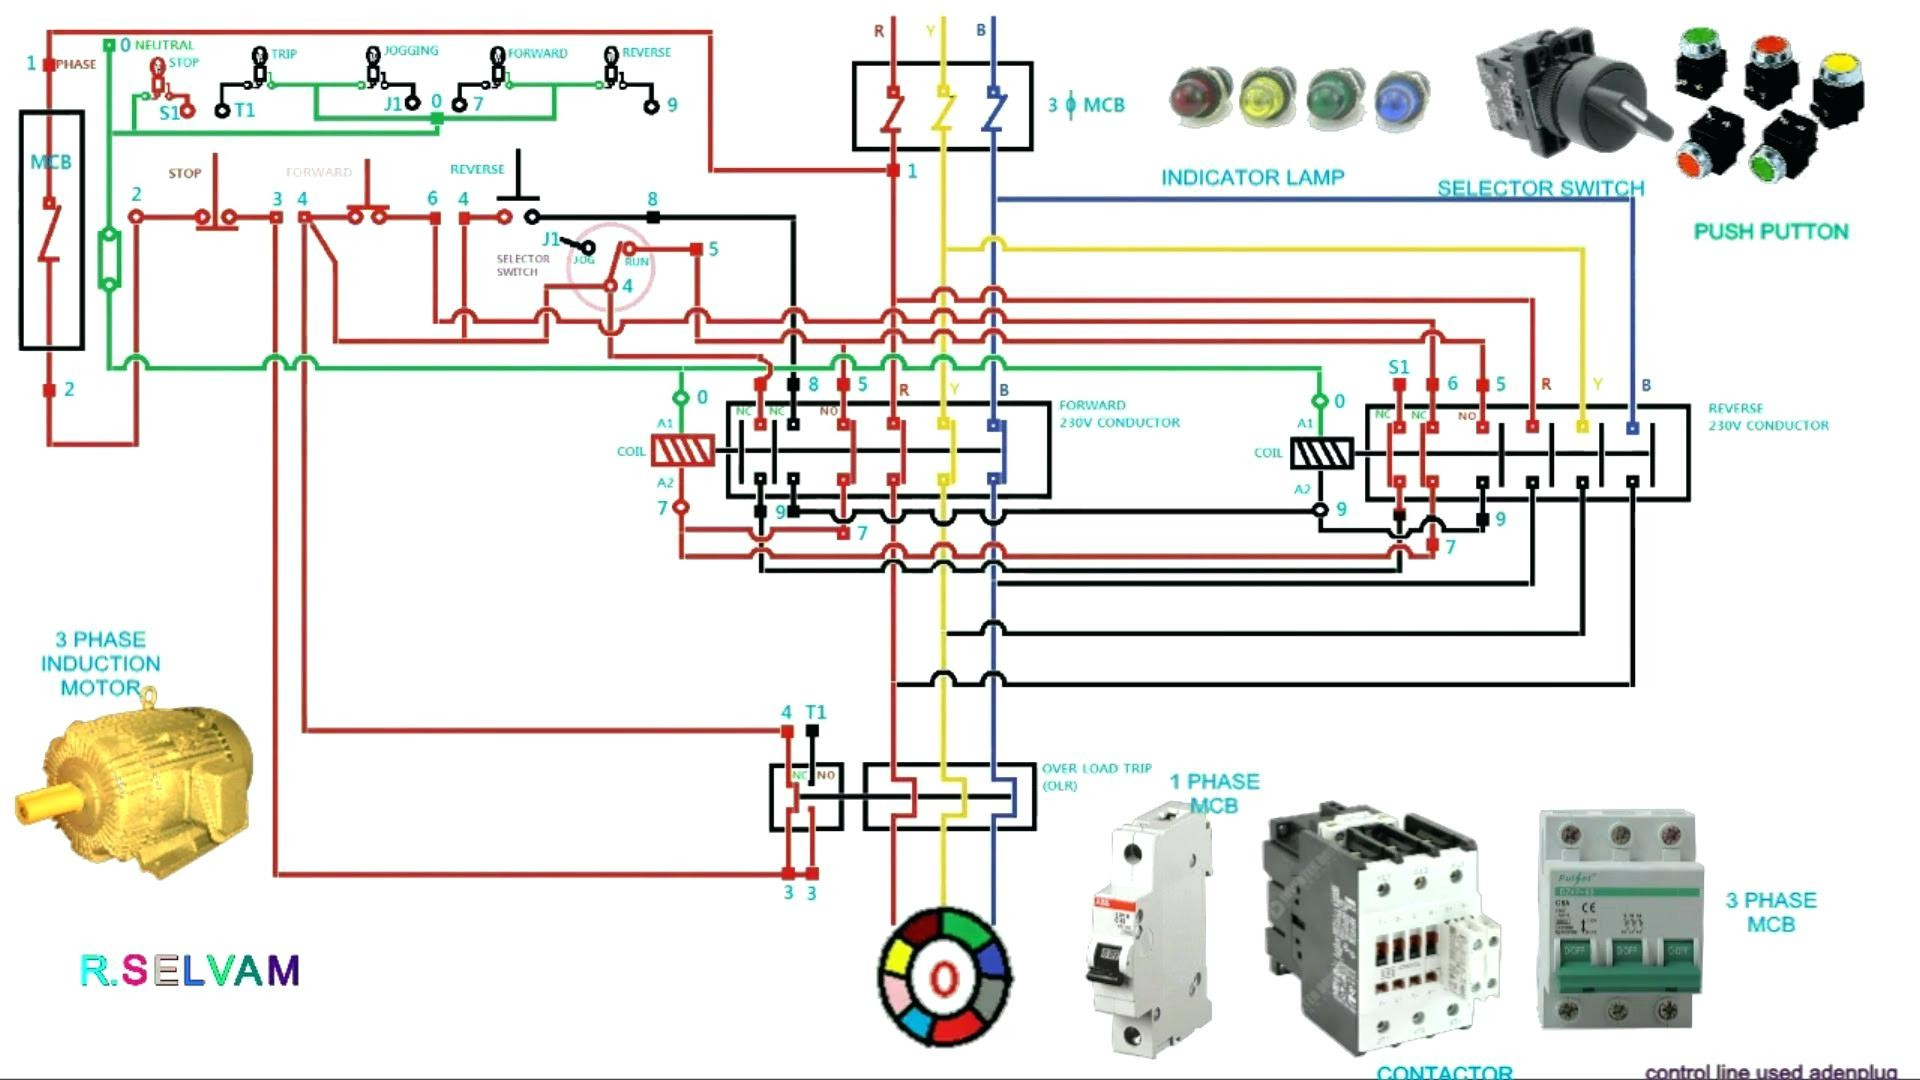 3 phase contactor wiring diagram start stop Download-3 phase contactor wiring diagram start stop Download Circuit Diagram Contactor Best 3 Phase Motor 8-r